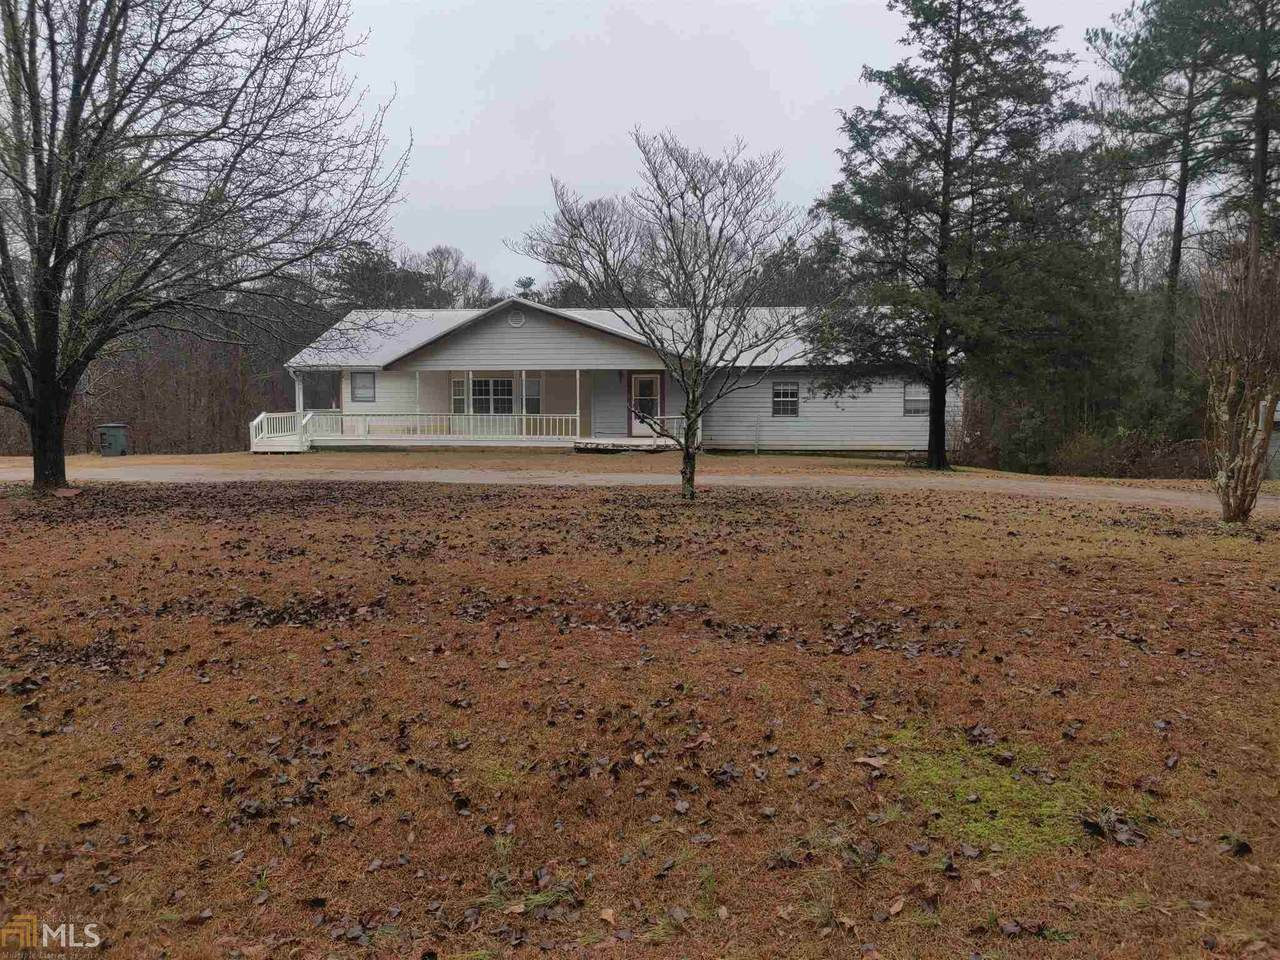 4945 Wallace Rd - Photo 1